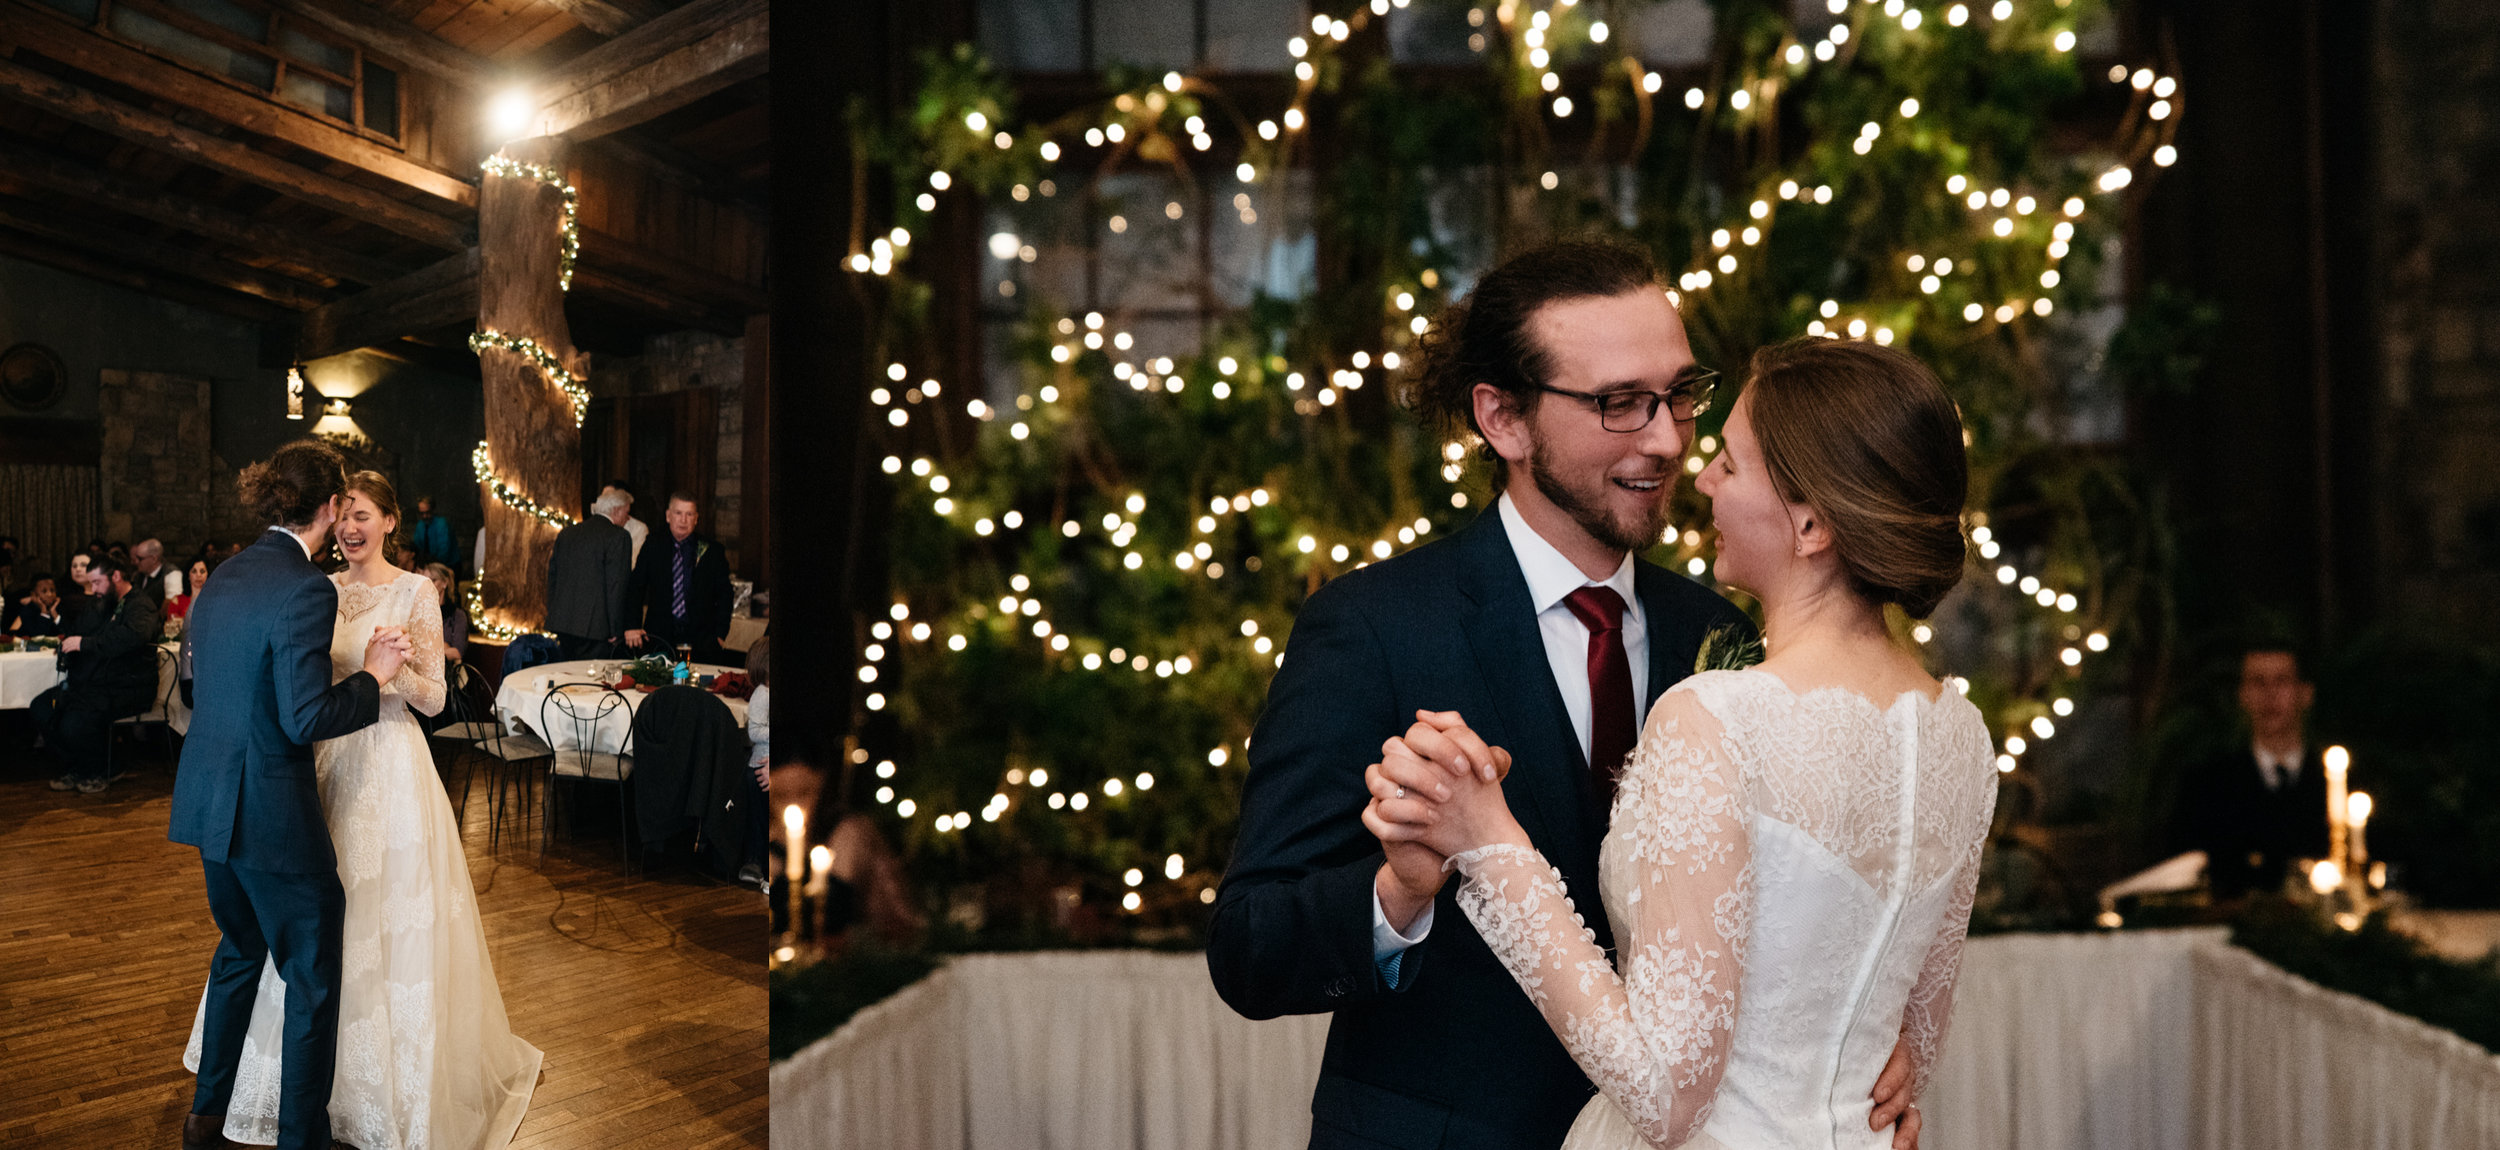 First Dance Green Gables Wedding Photographer, Mariah Fisher.jpg